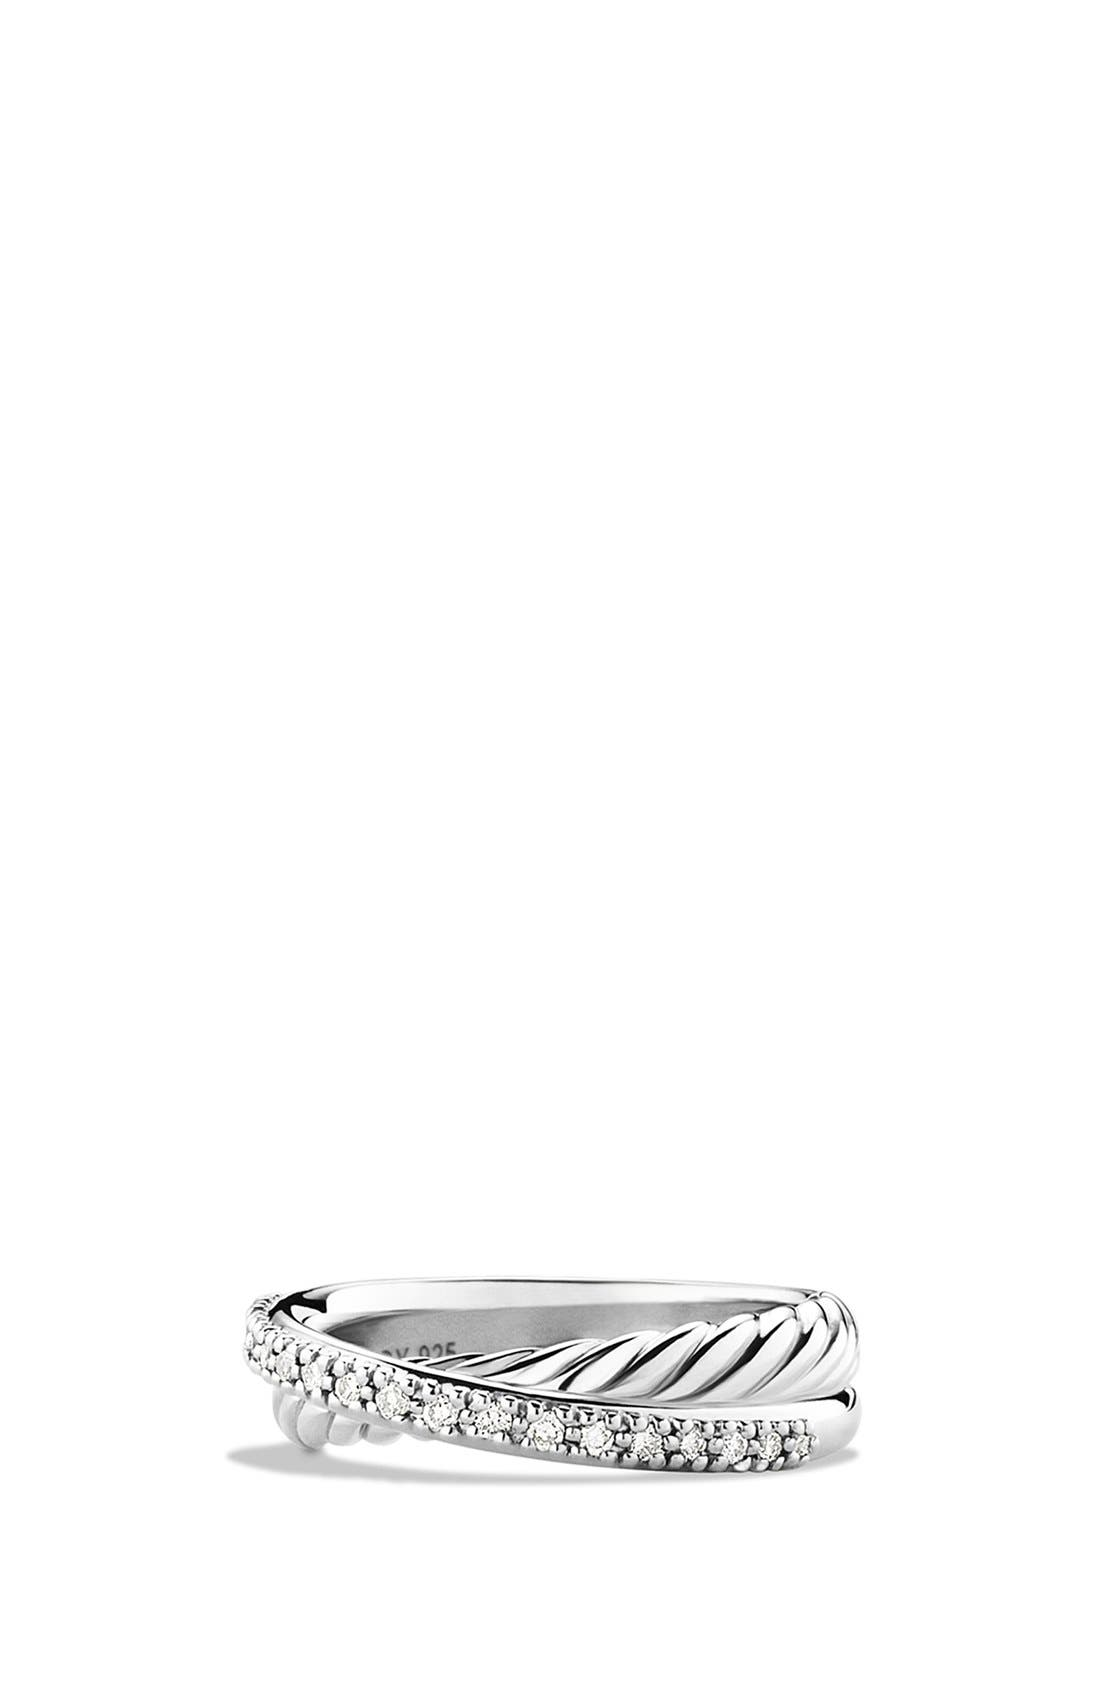 Alternate Image 1 Selected - David Yurman 'Crossover' Ring with Diamonds